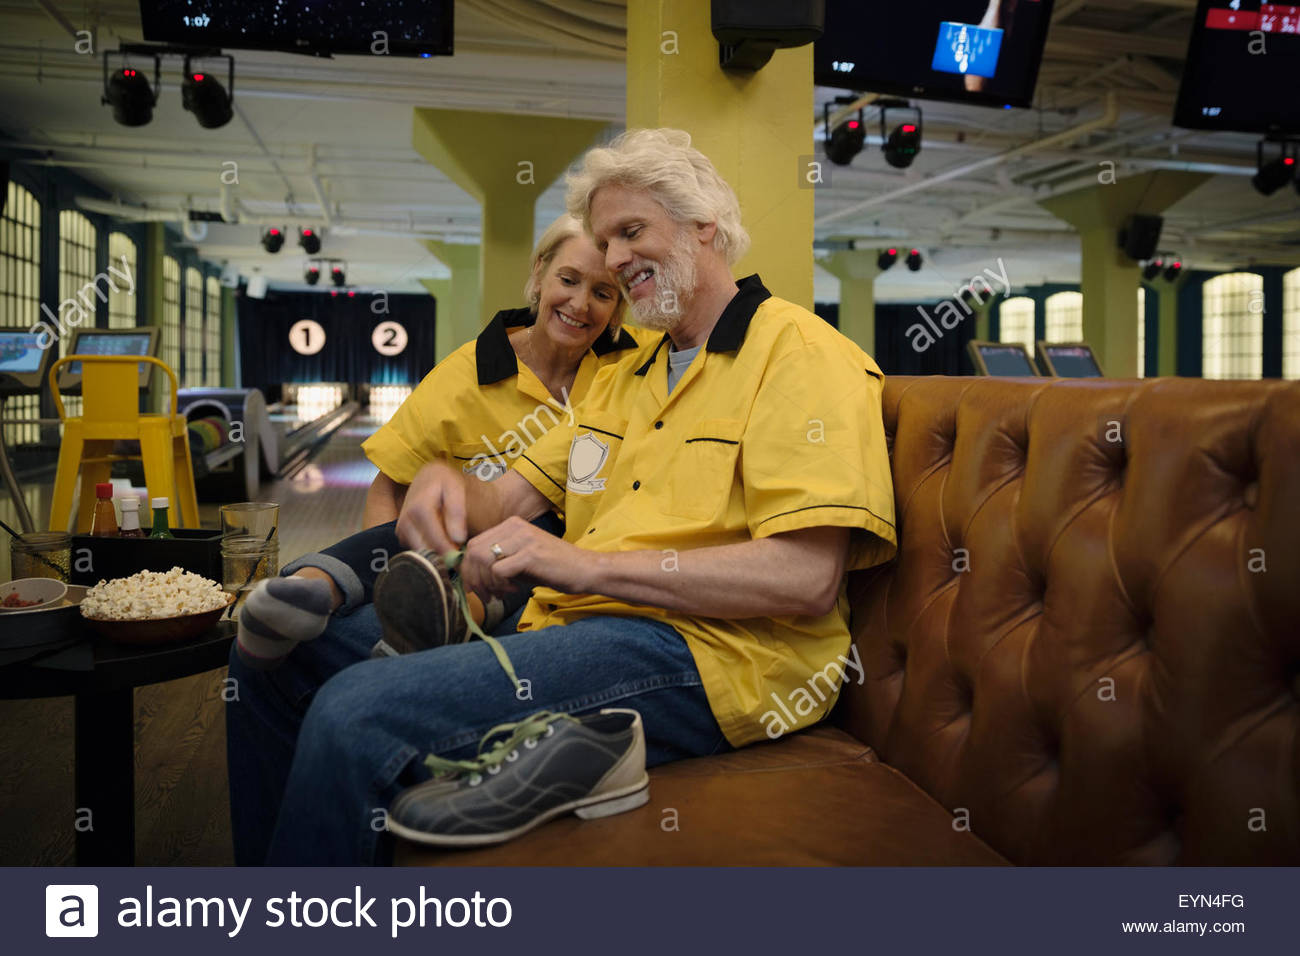 Husband untying wife bowling shoes in bowling alley - Stock Image